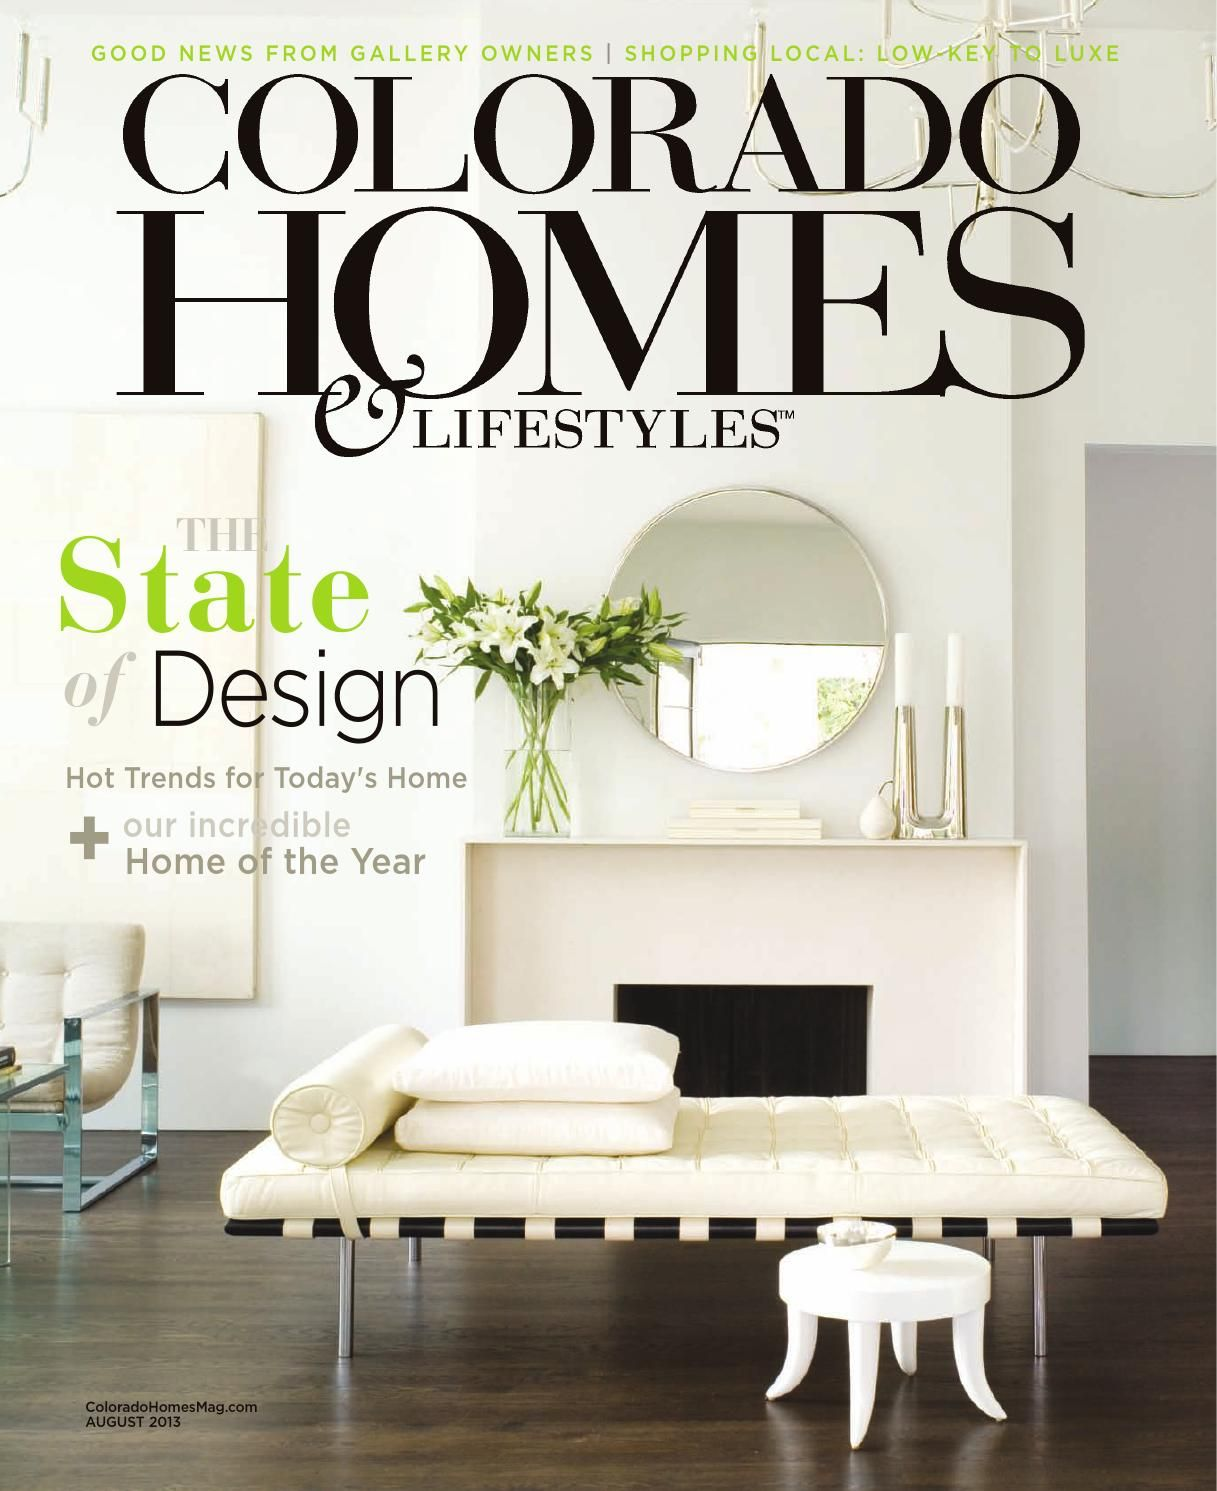 Colorado Homes & Lifestyles August 2013